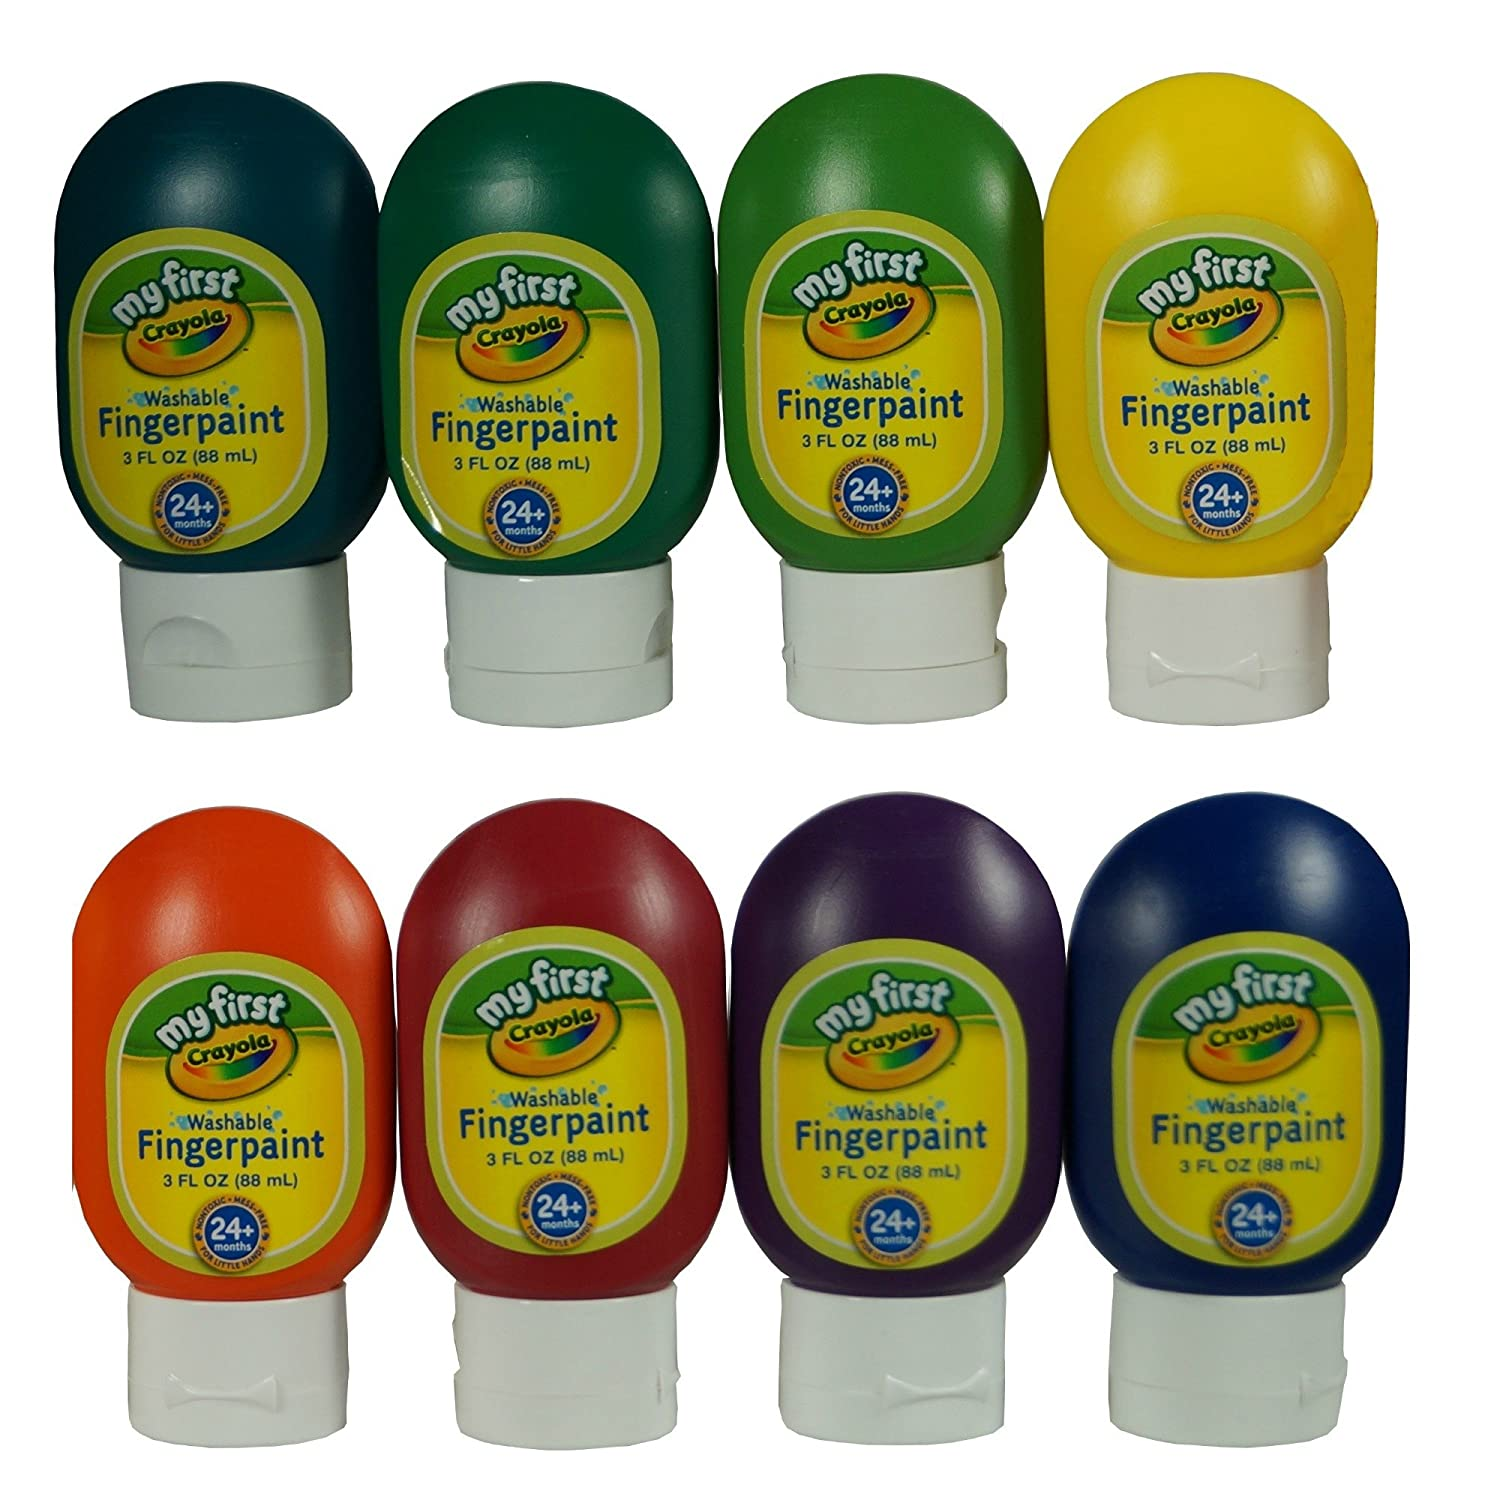 Crayola Washable Finger Paints, 8-Count ( 3 ounce no-drip tubes ), Red, Blue, Yellow, Green, Orange, Purple, Lime Green And Teal by Crayola 81-1424